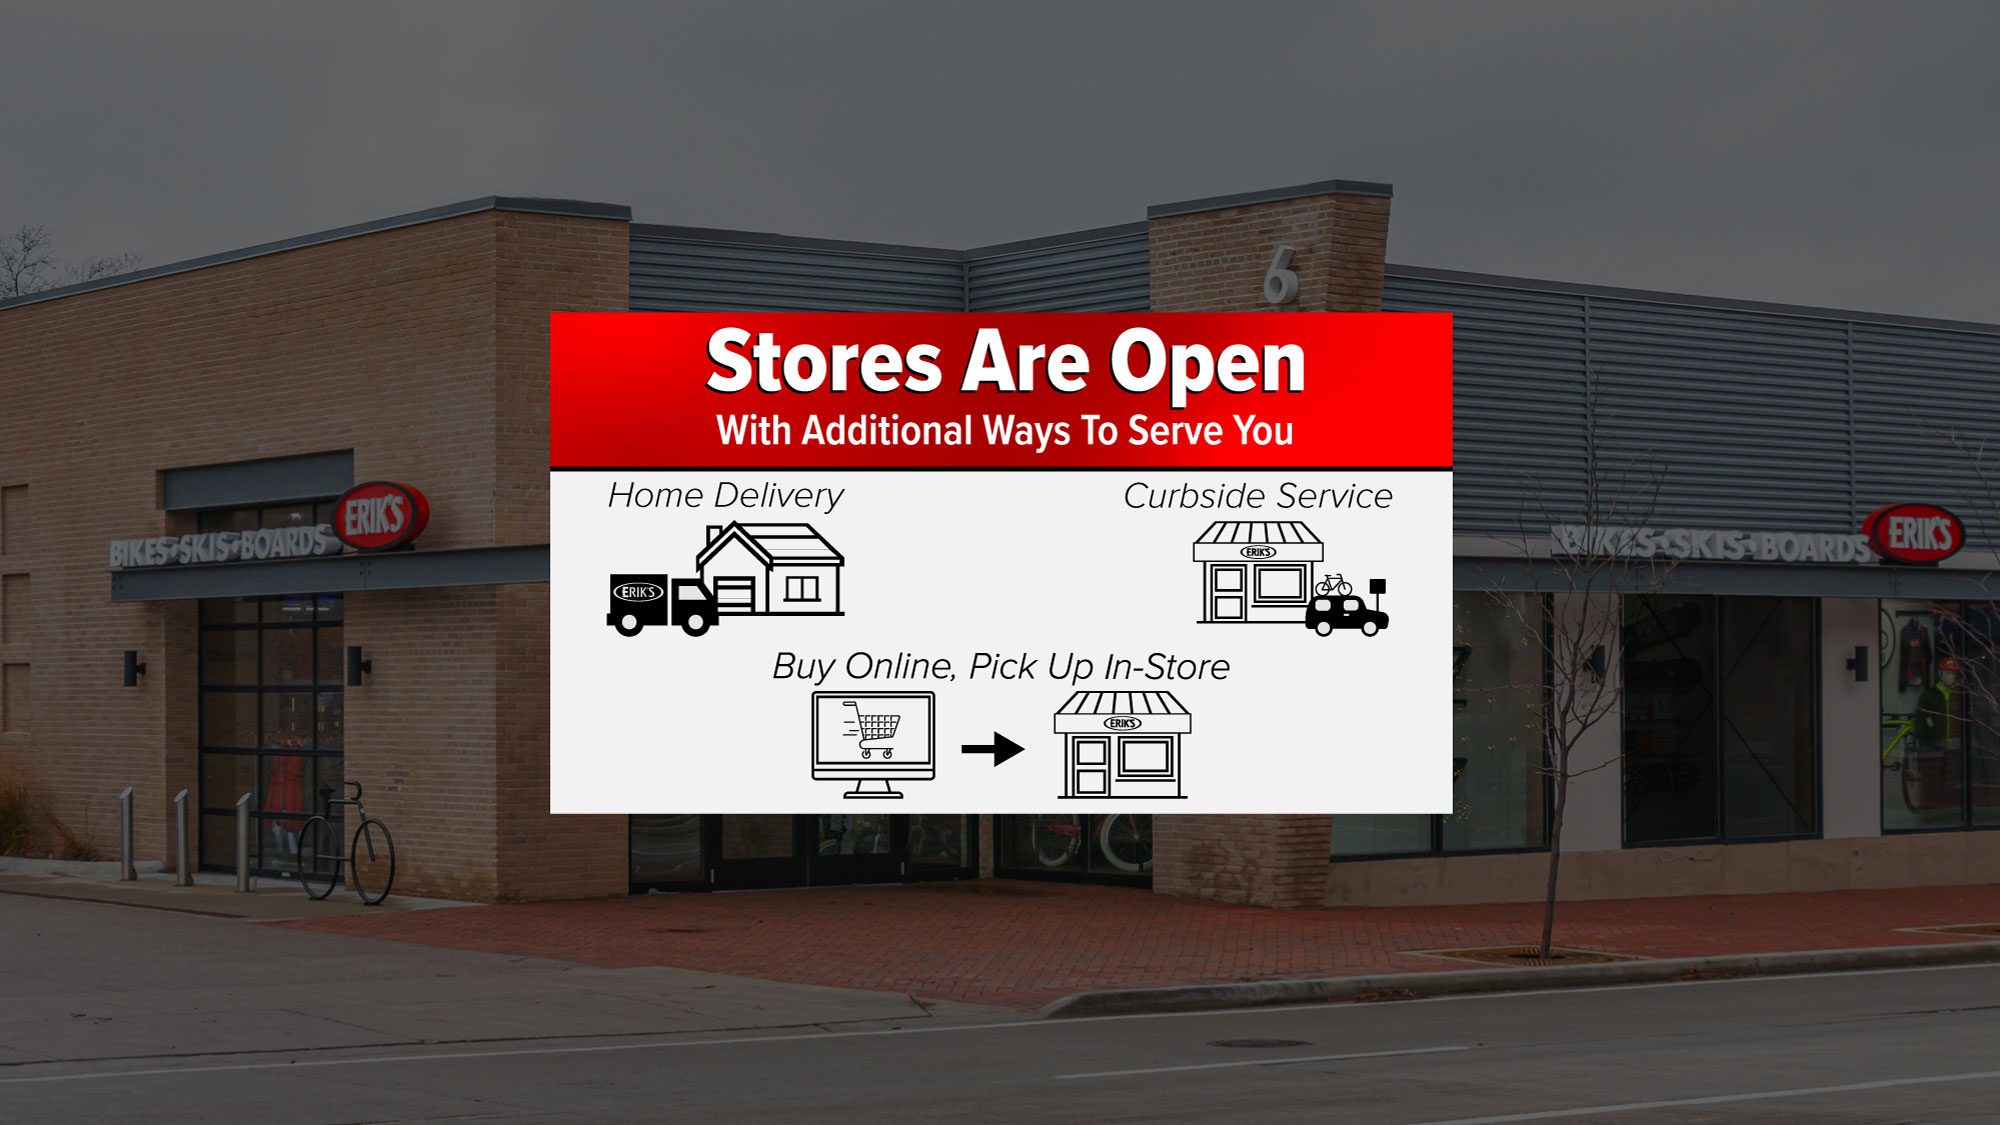 Stores are open!